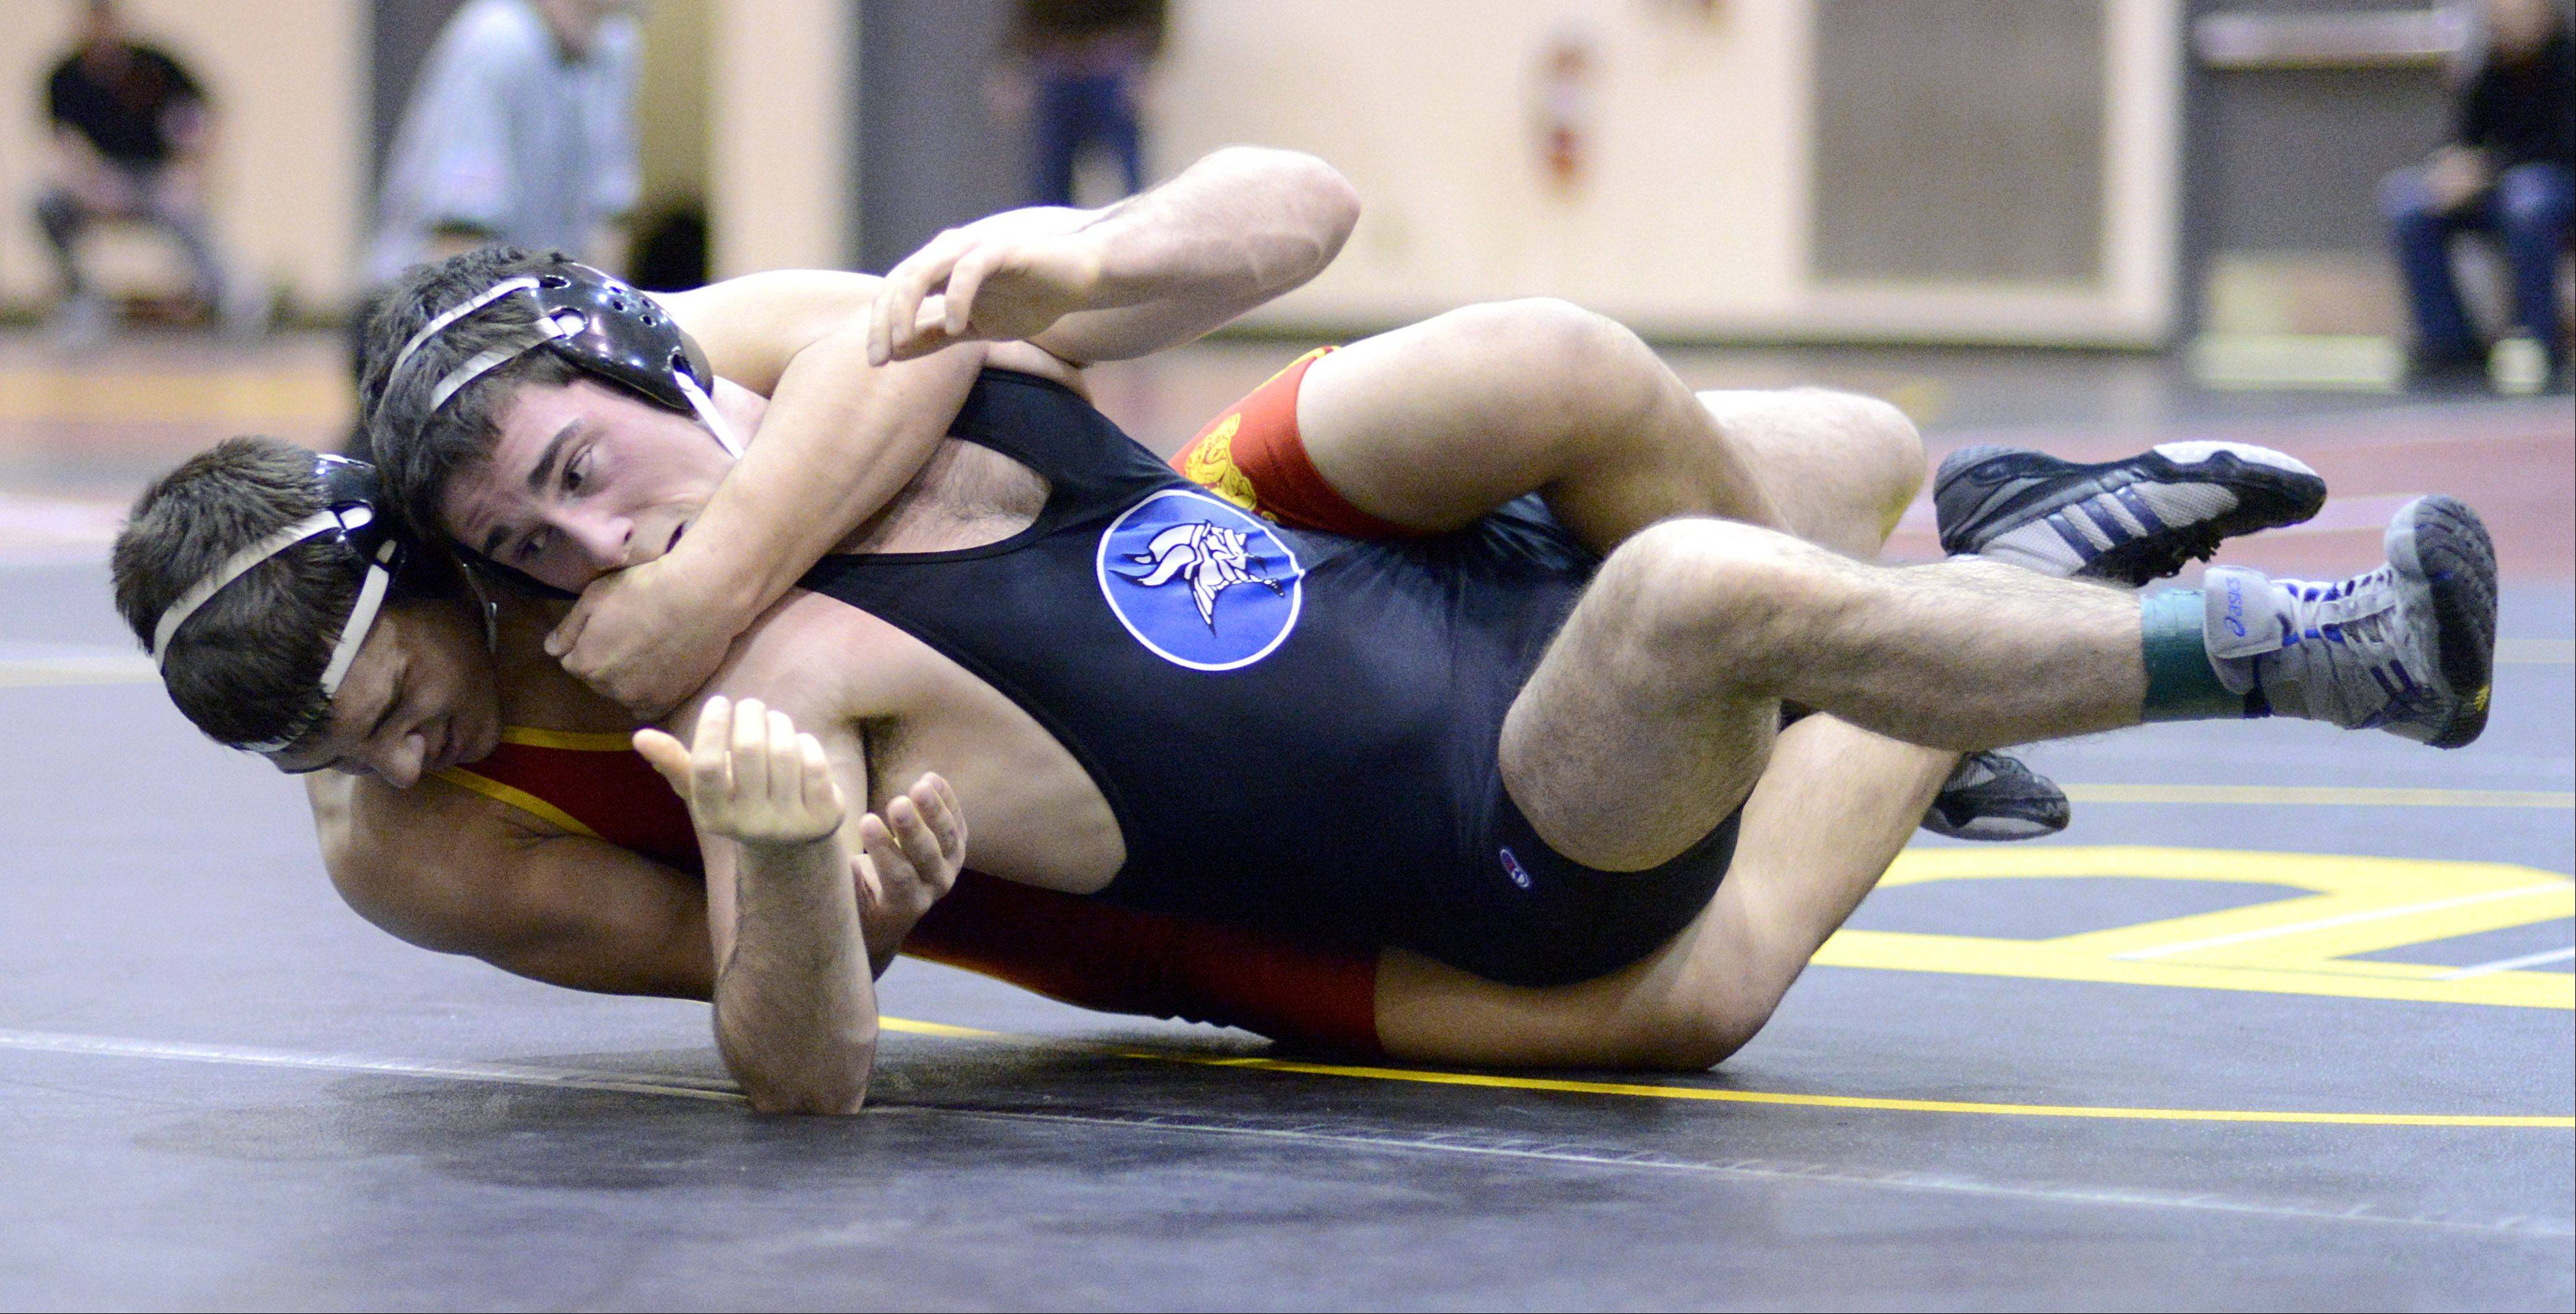 Batavia's Jon Wagner wraps up Geneva's Alex Kunkel in the 160-pound semifinals match at the Upstate Eight mega conference on Saturday, January 19.